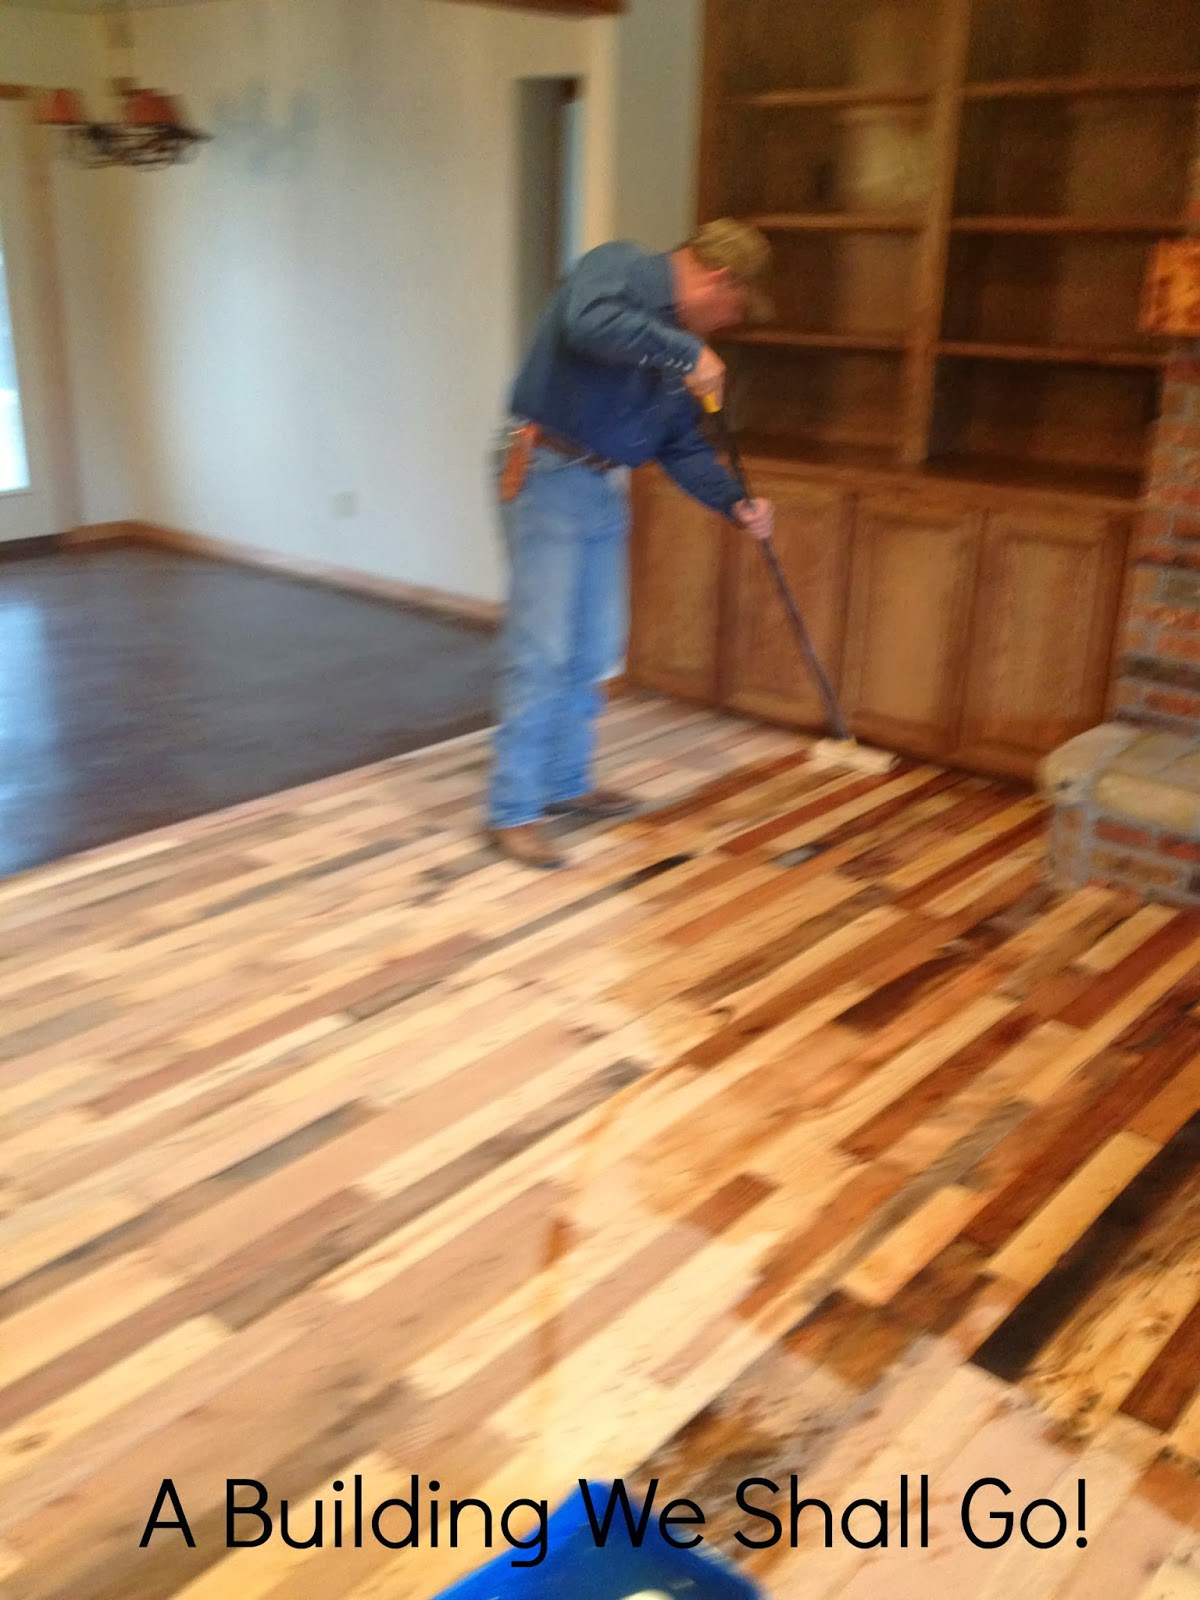 A Building We Shall Go! - A Building We Shall Go!: The Art Of Pallet Wood Flooring